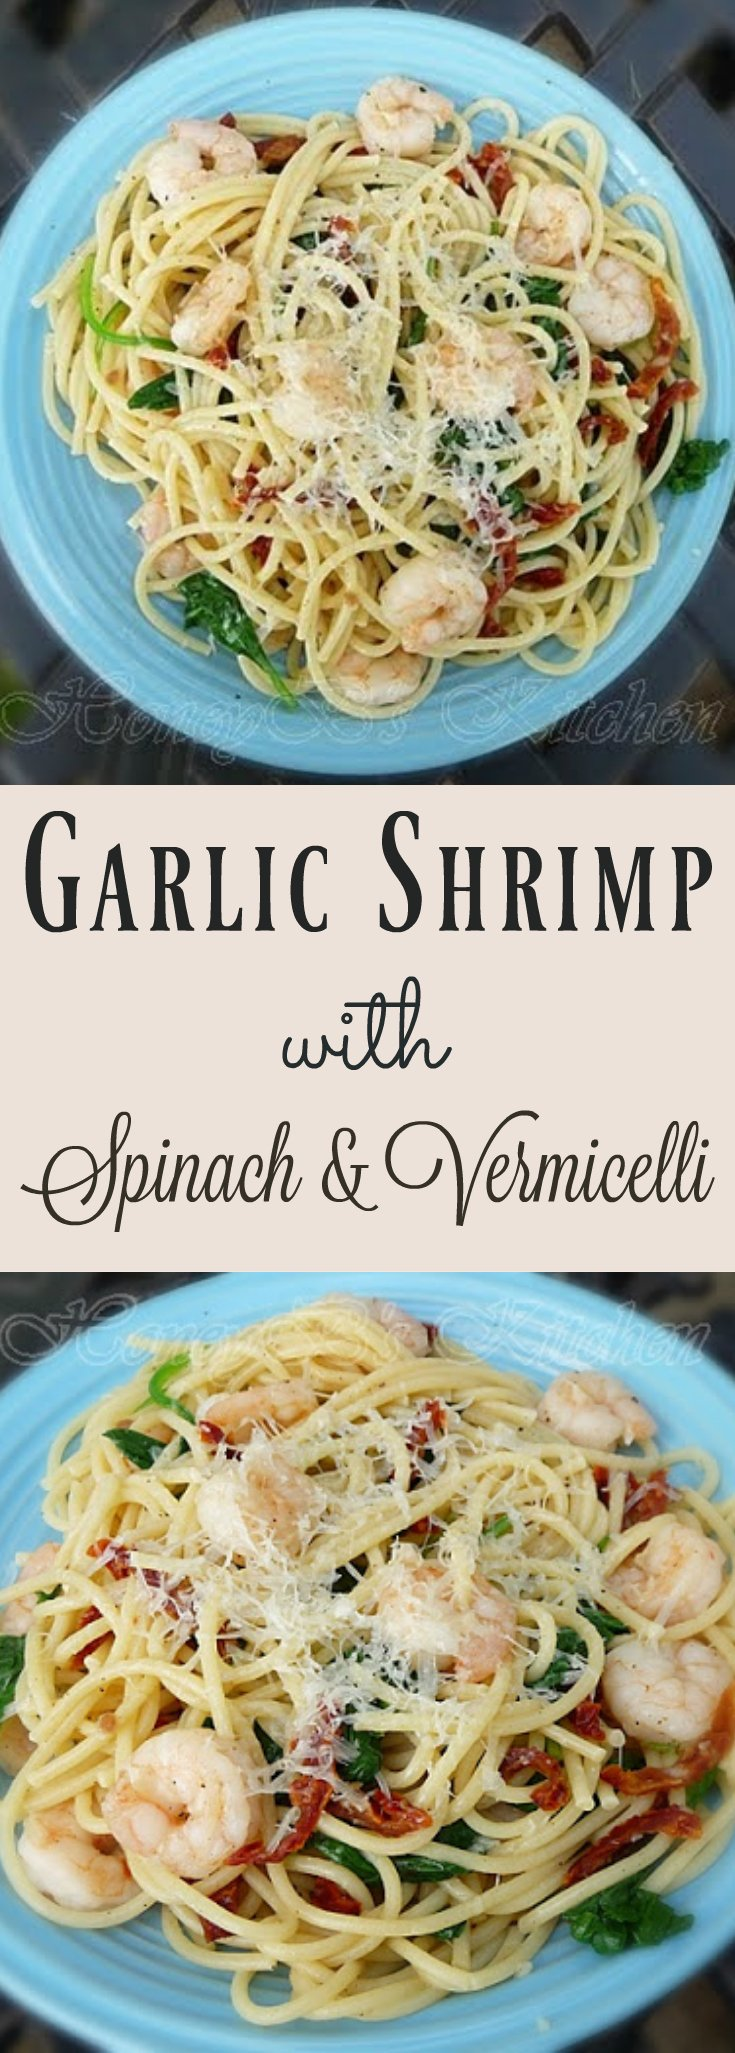 Garlic Shrimp with Spinach ans Vermicelli